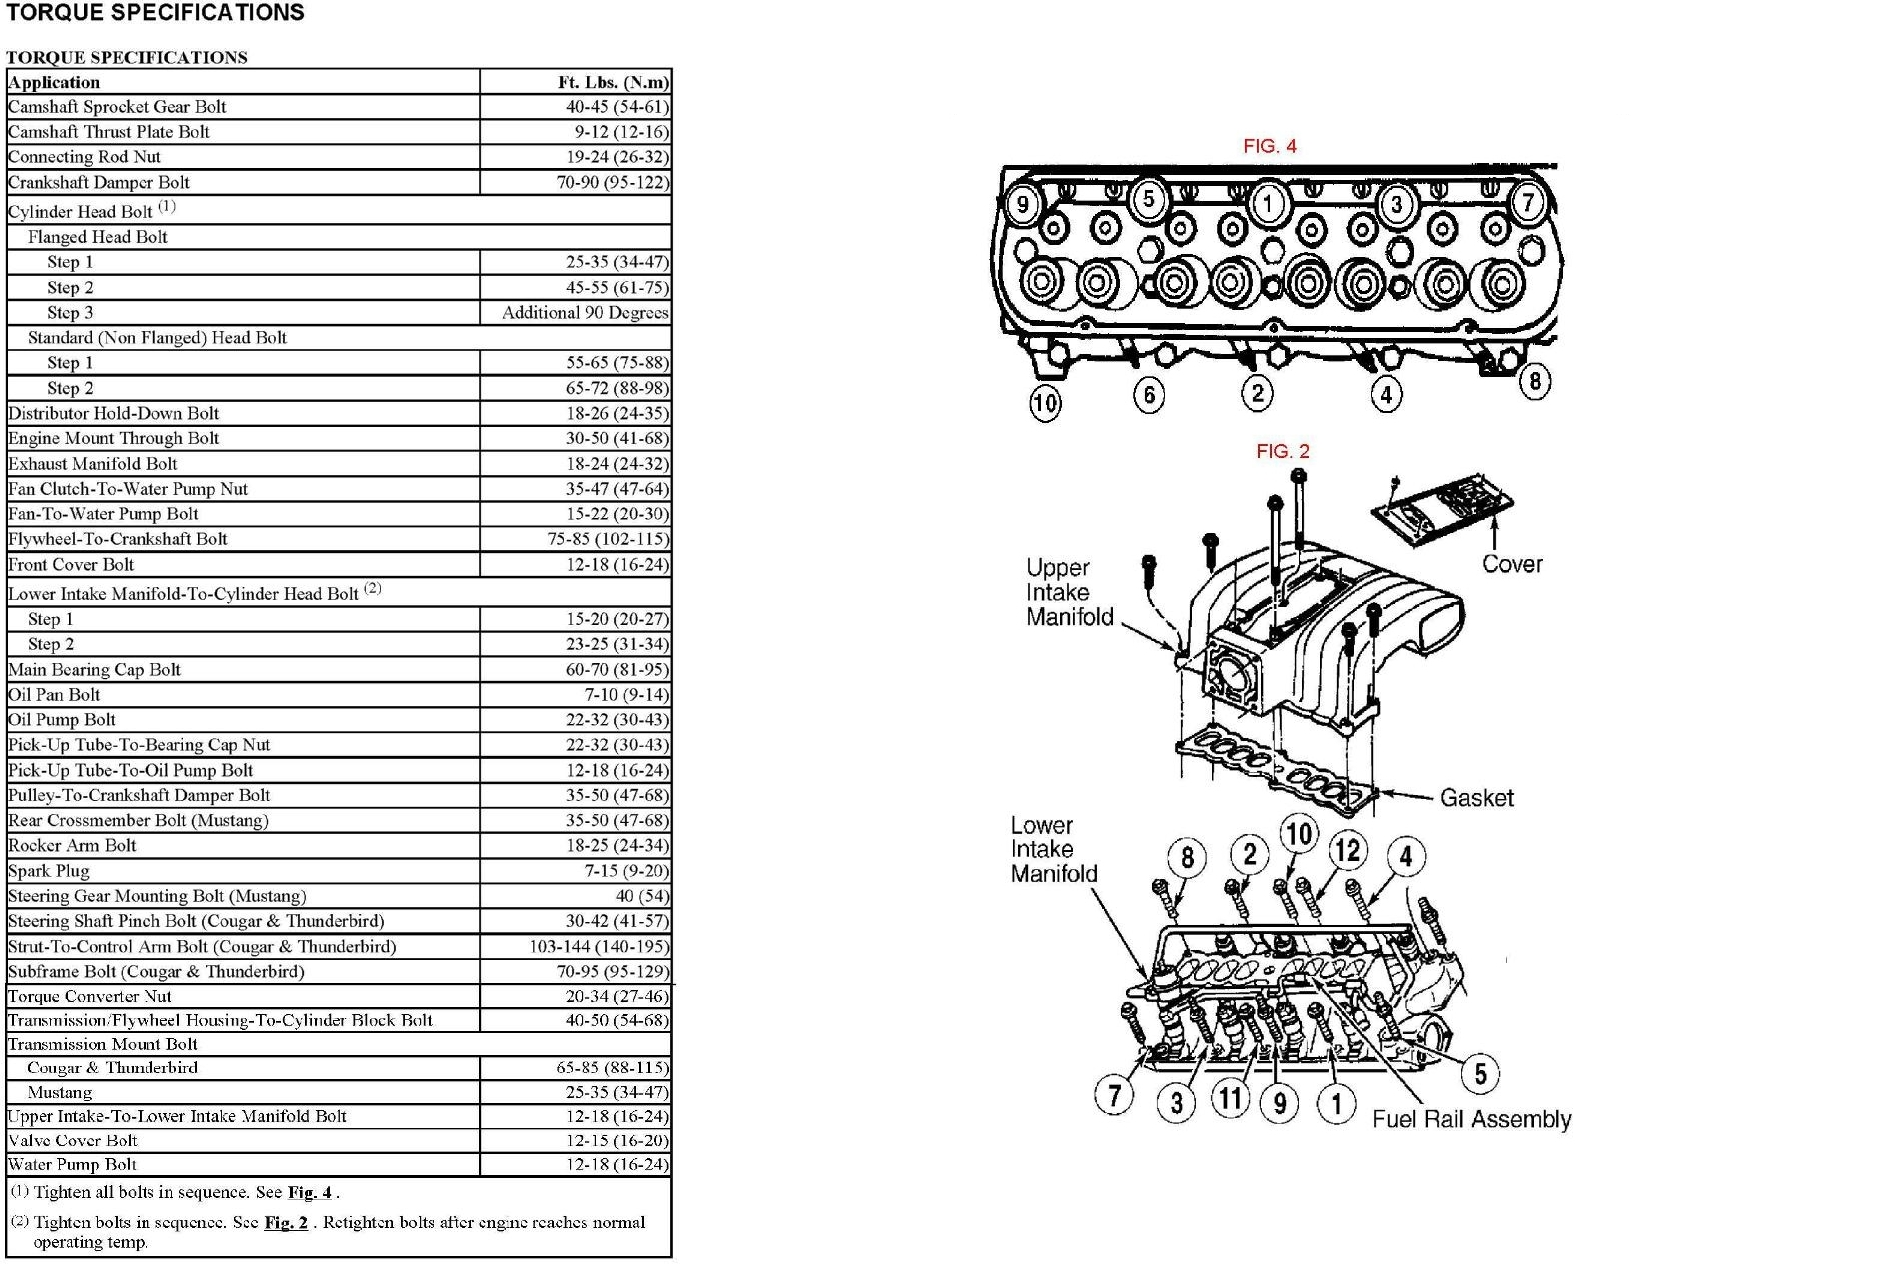 Gm 3800 Series 2 Engine Diagram additionally Cat moreover C15 Cat Ecm Pin Wiring Diagram additionally 2003 Lincoln Navigator 5 4l Serpentine Belt Diagram besides 2006 Dt466e Icp Sensor Location. on cat c13 engine wiring diagram